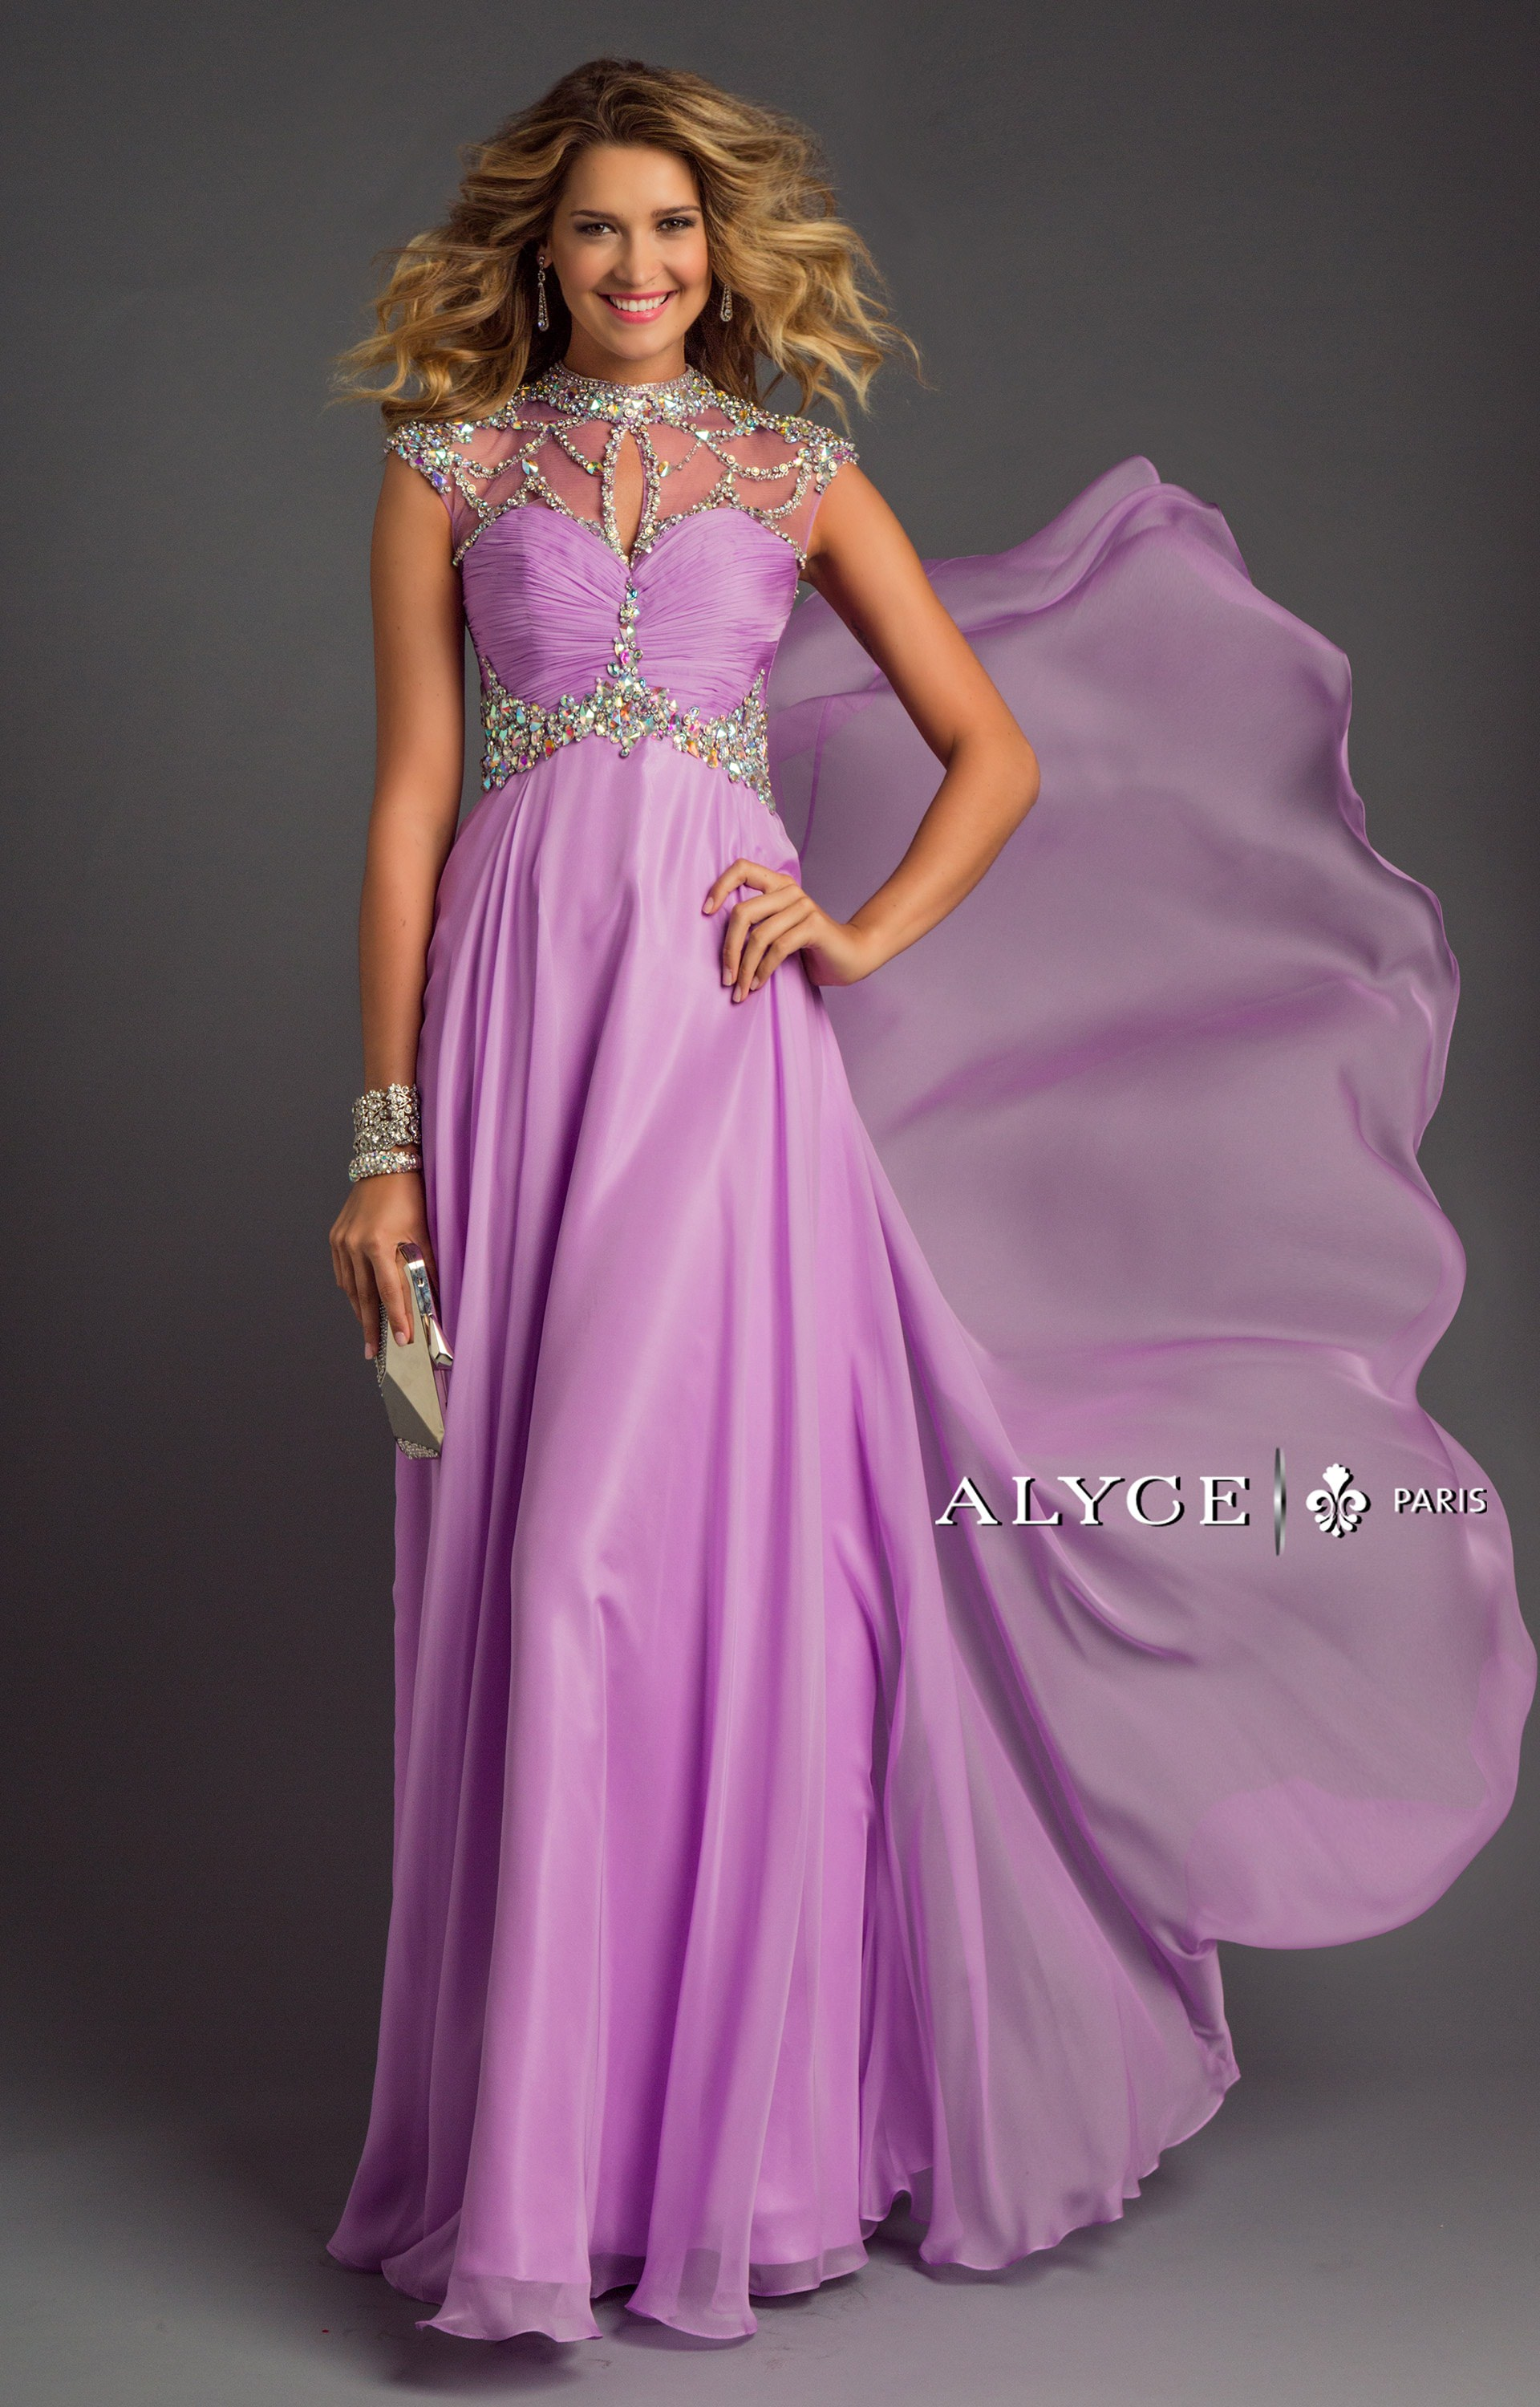 Alyce Paris 6414 Glamorous Goddess Dress Prom Dress